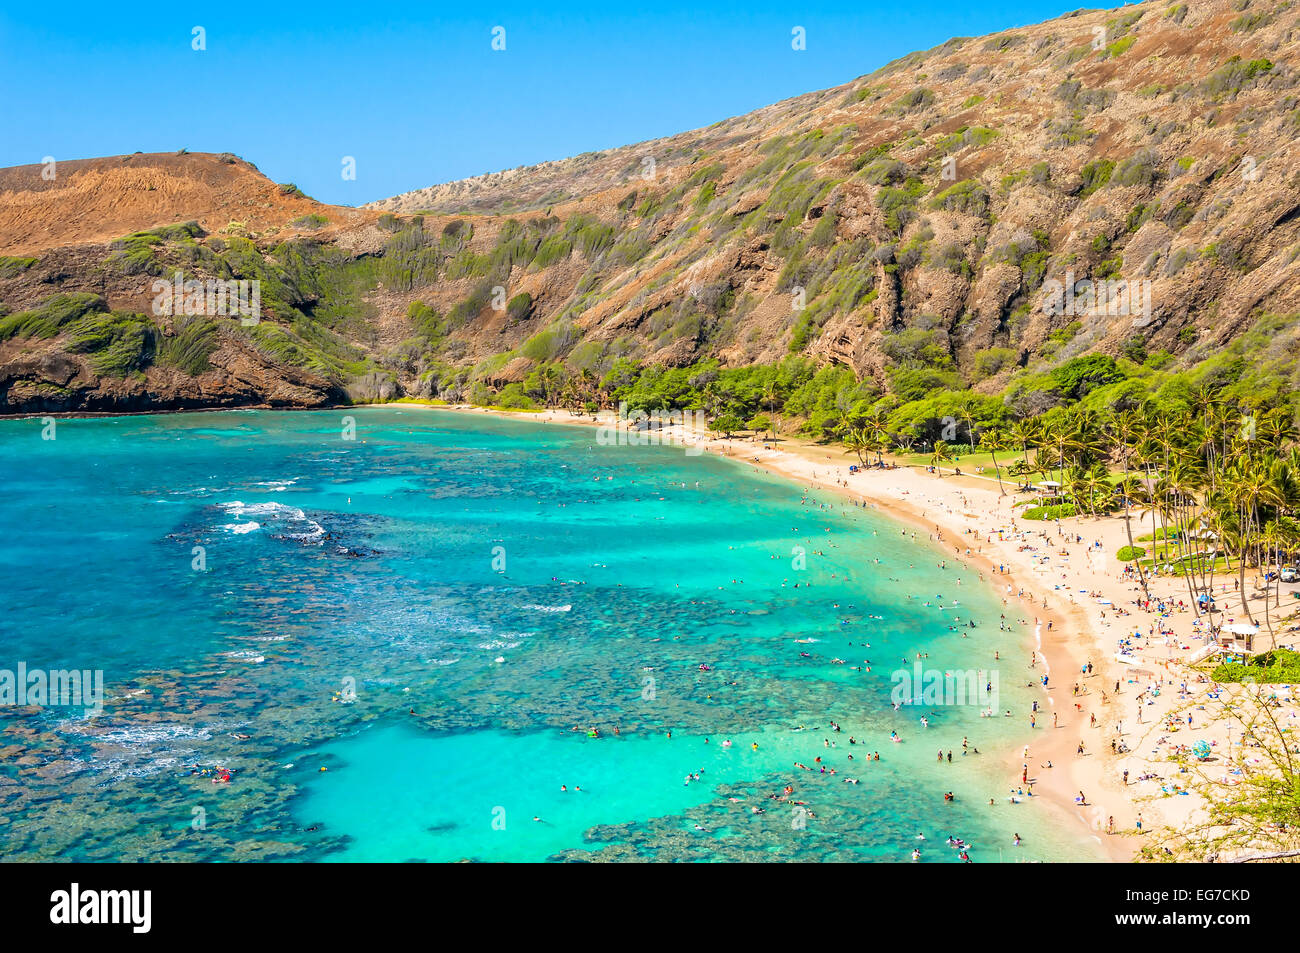 day view of snorkeling tropical paradise Hanauma bay in Oahu, Hawaii - Stock Image